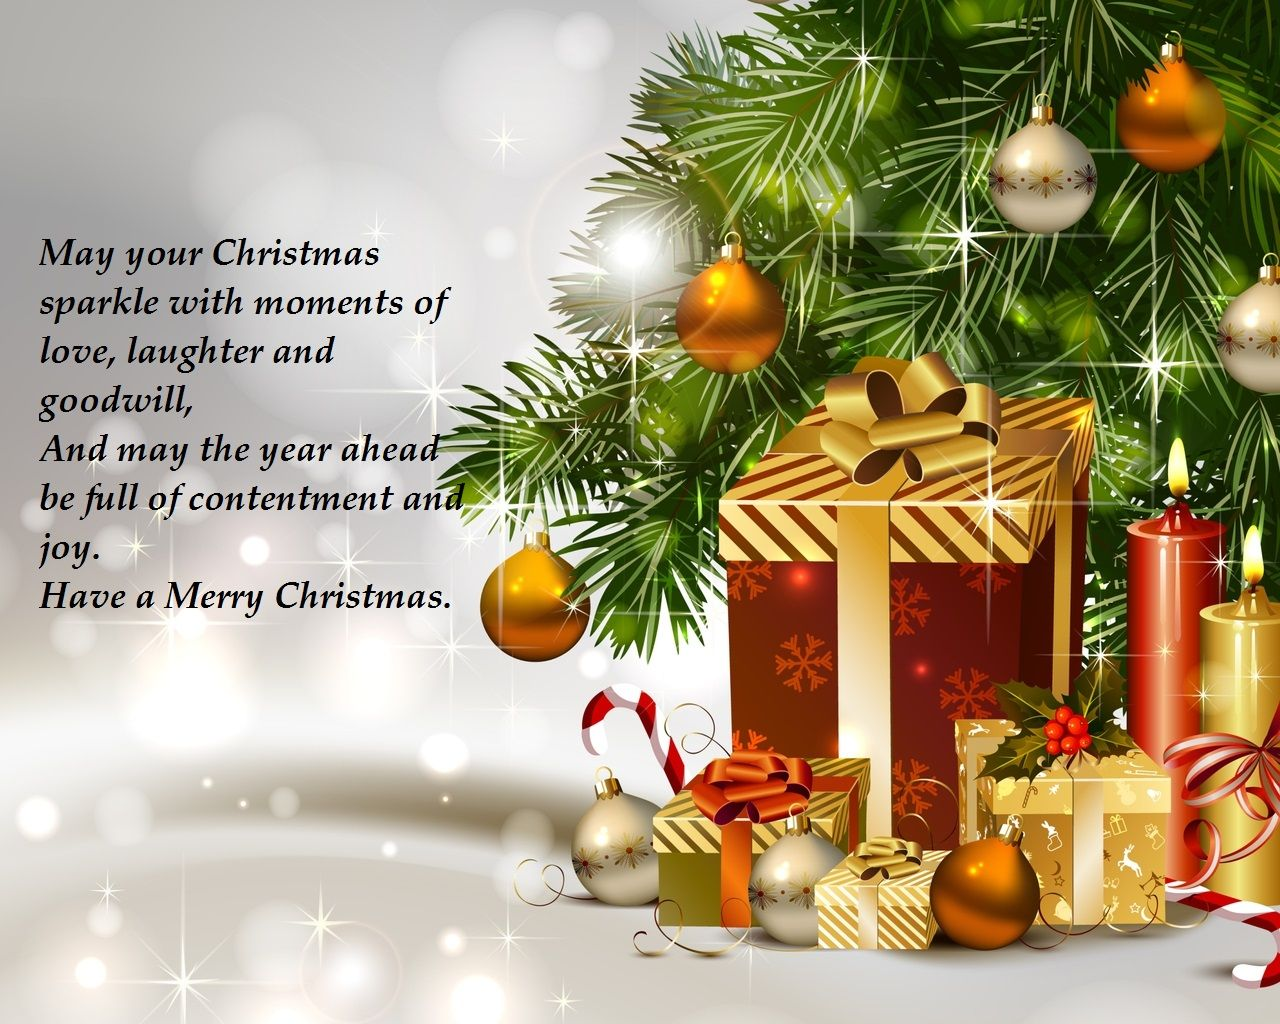 Christmas Wishes Greetings Christmas Picture Greeting Quotes For